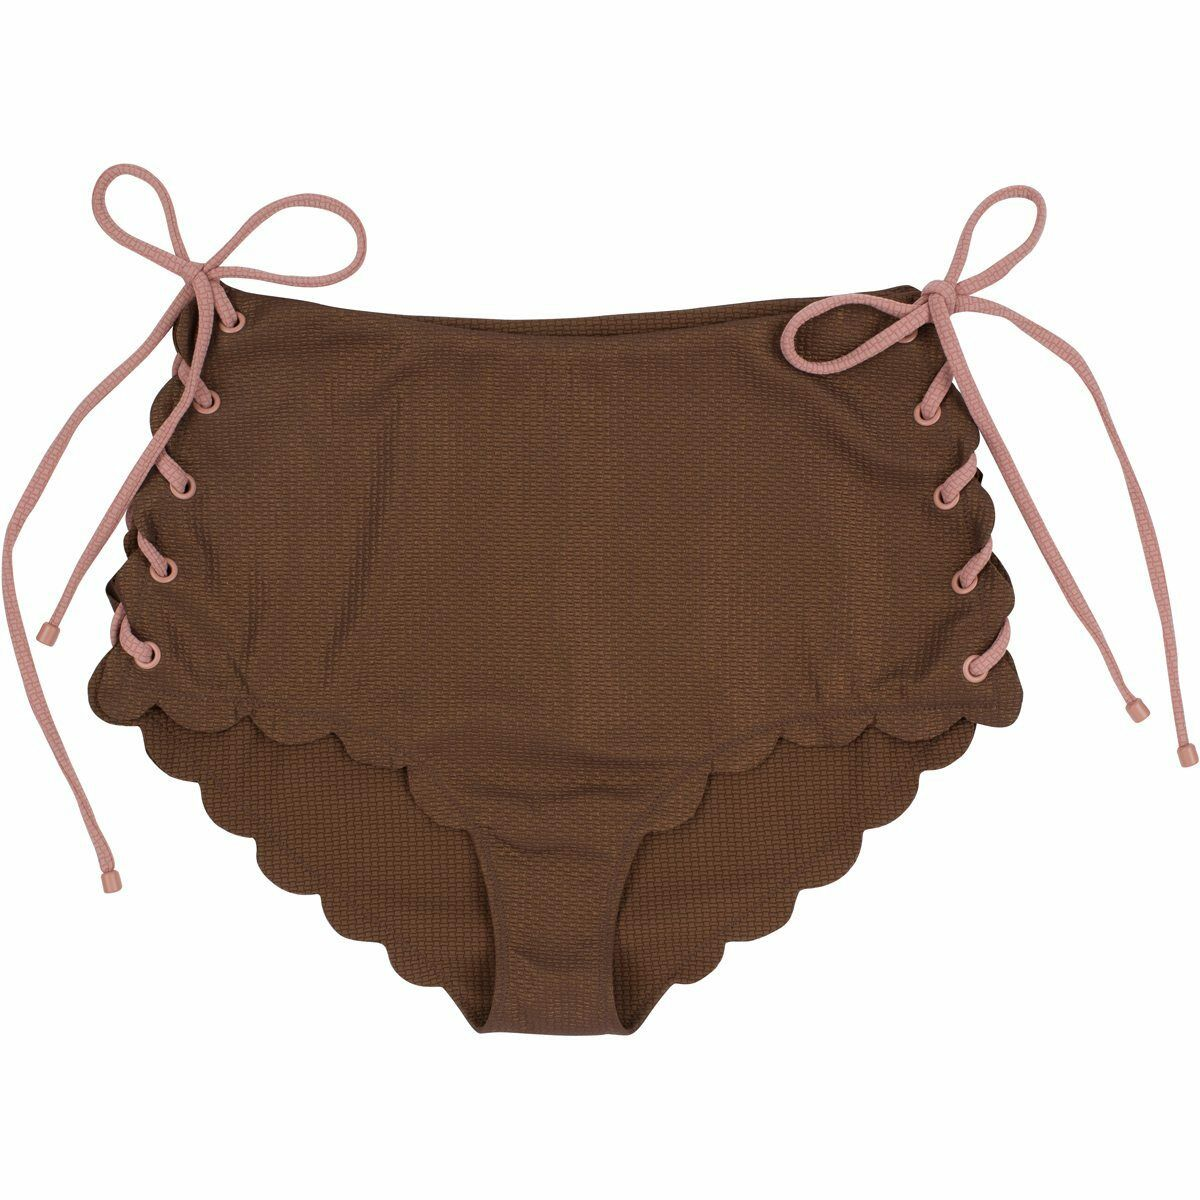 Marysia Palm Springs brown Metallic Hohe size Bikiniunterteil XS Bademode